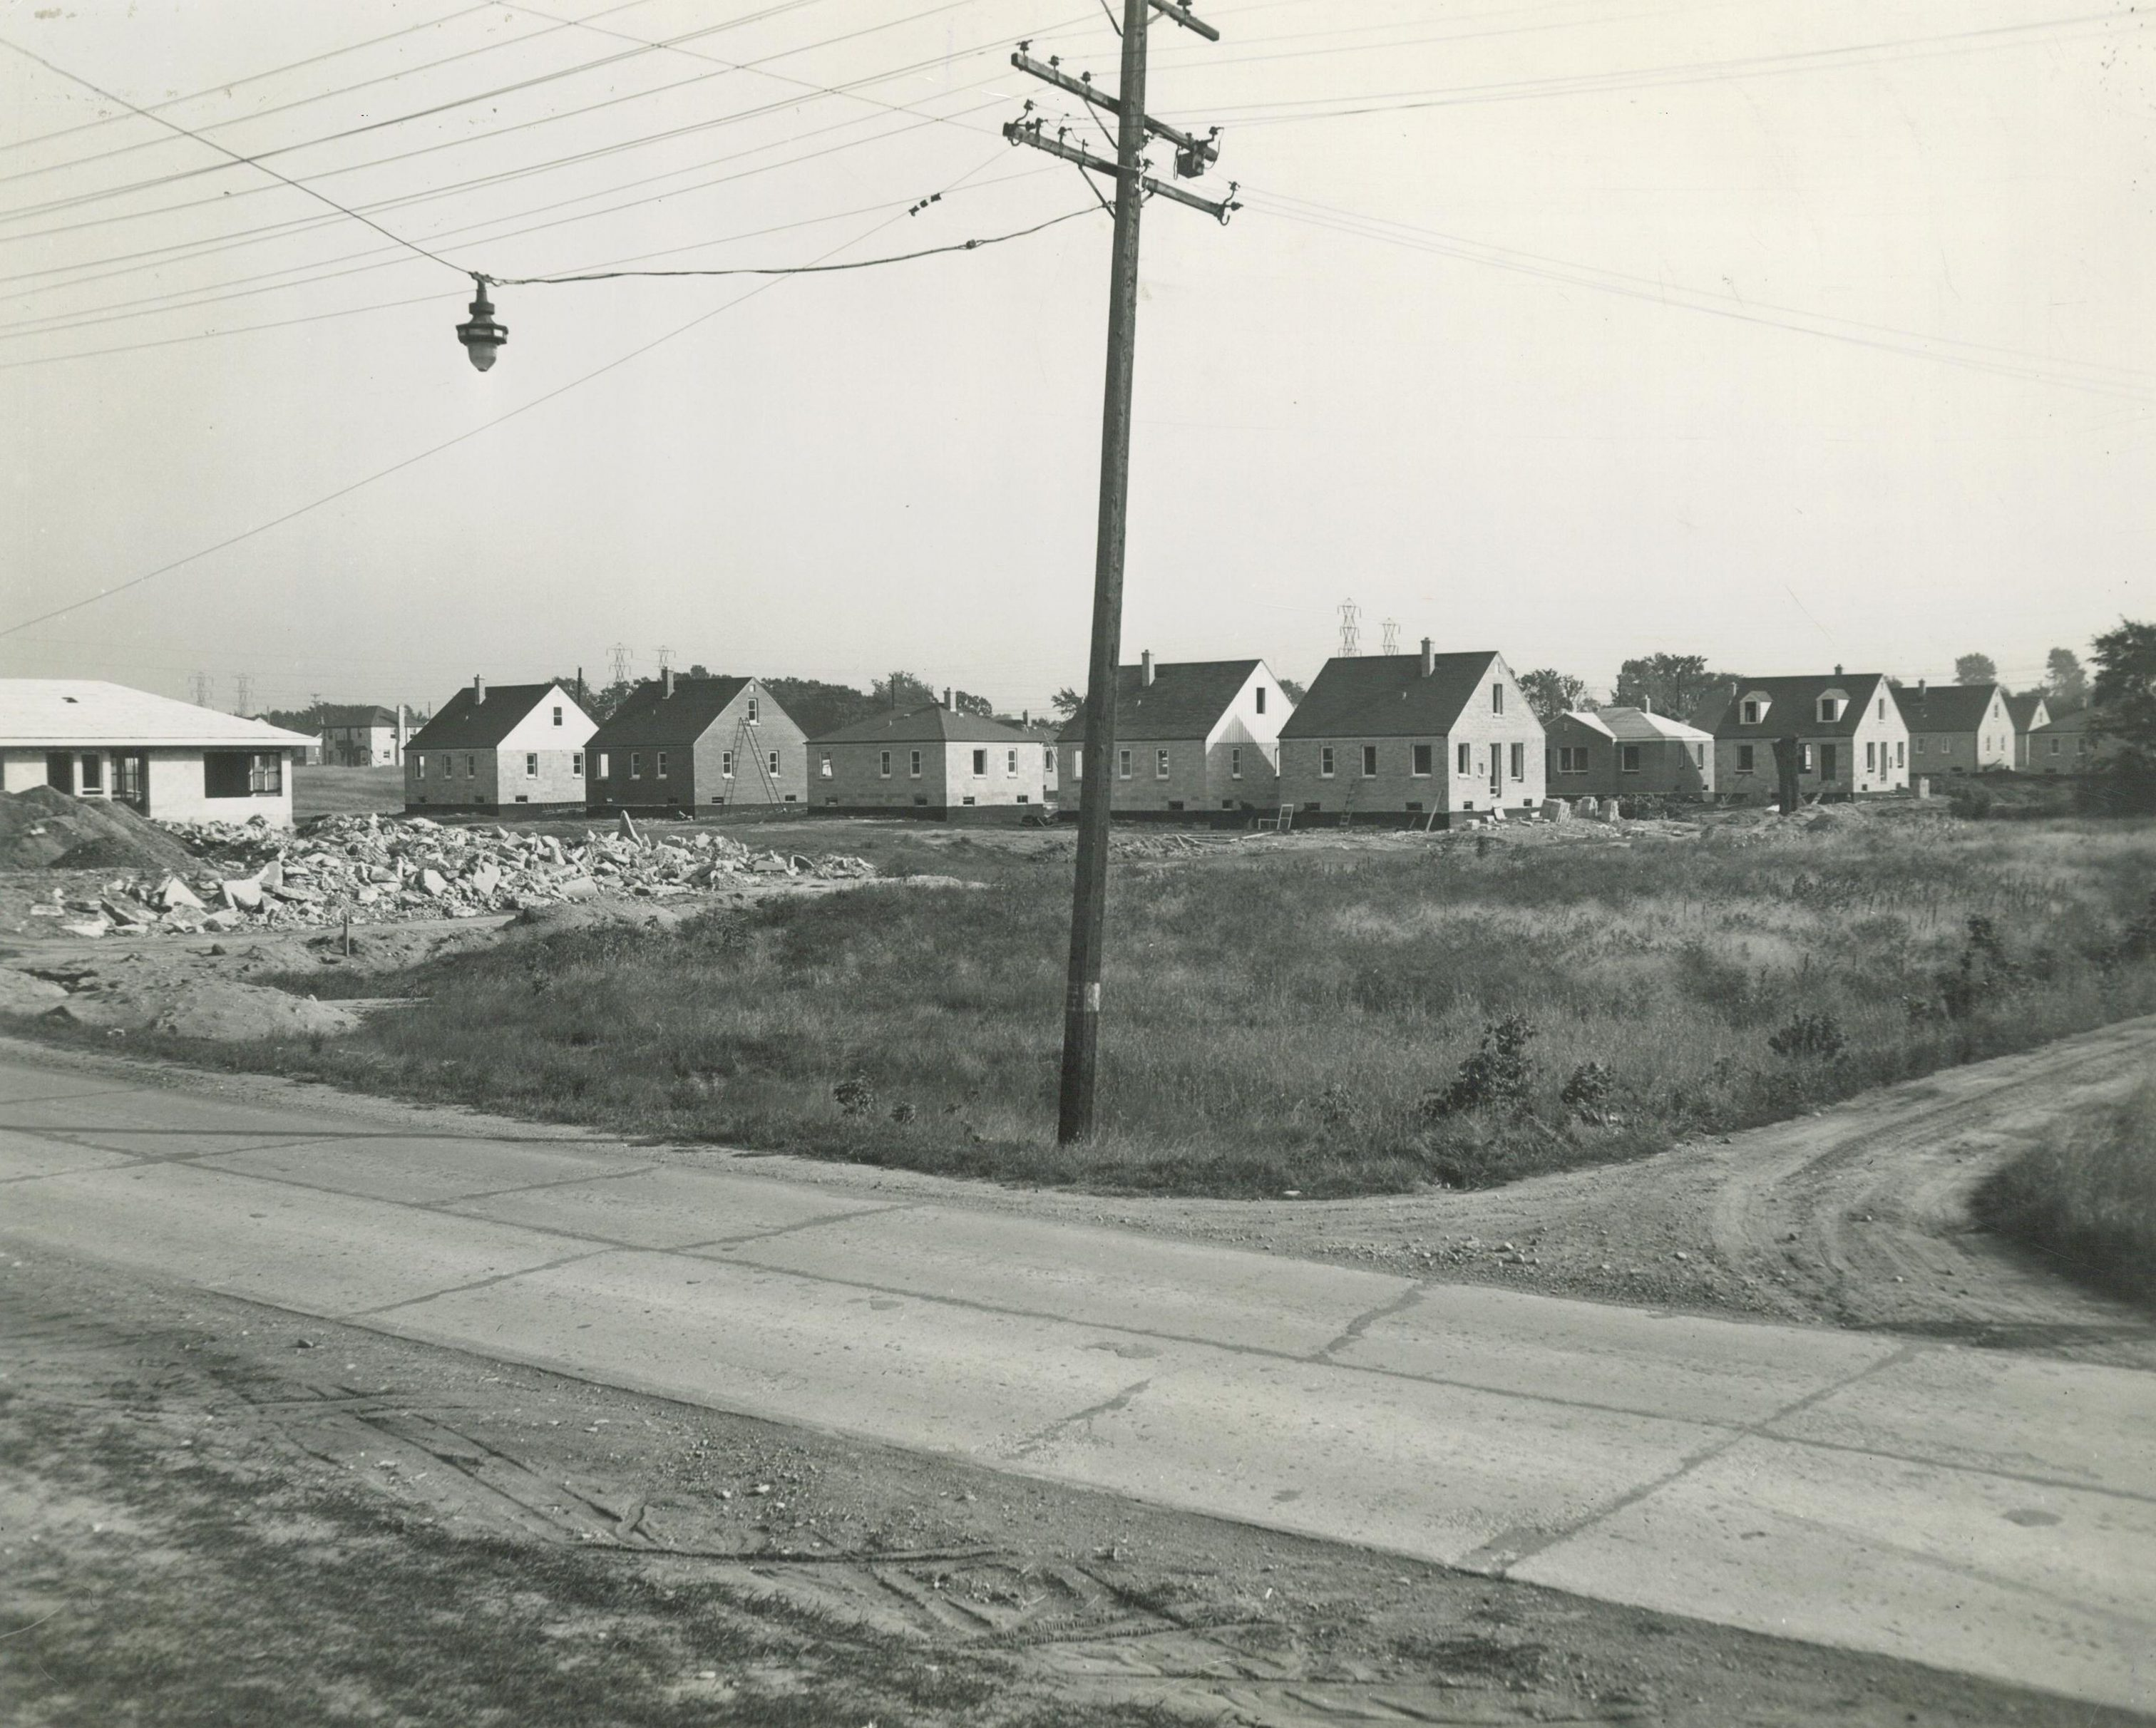 Houses under construction in 1950, shortly after this parcel on South Howard Street was annexed into Milwaukee.